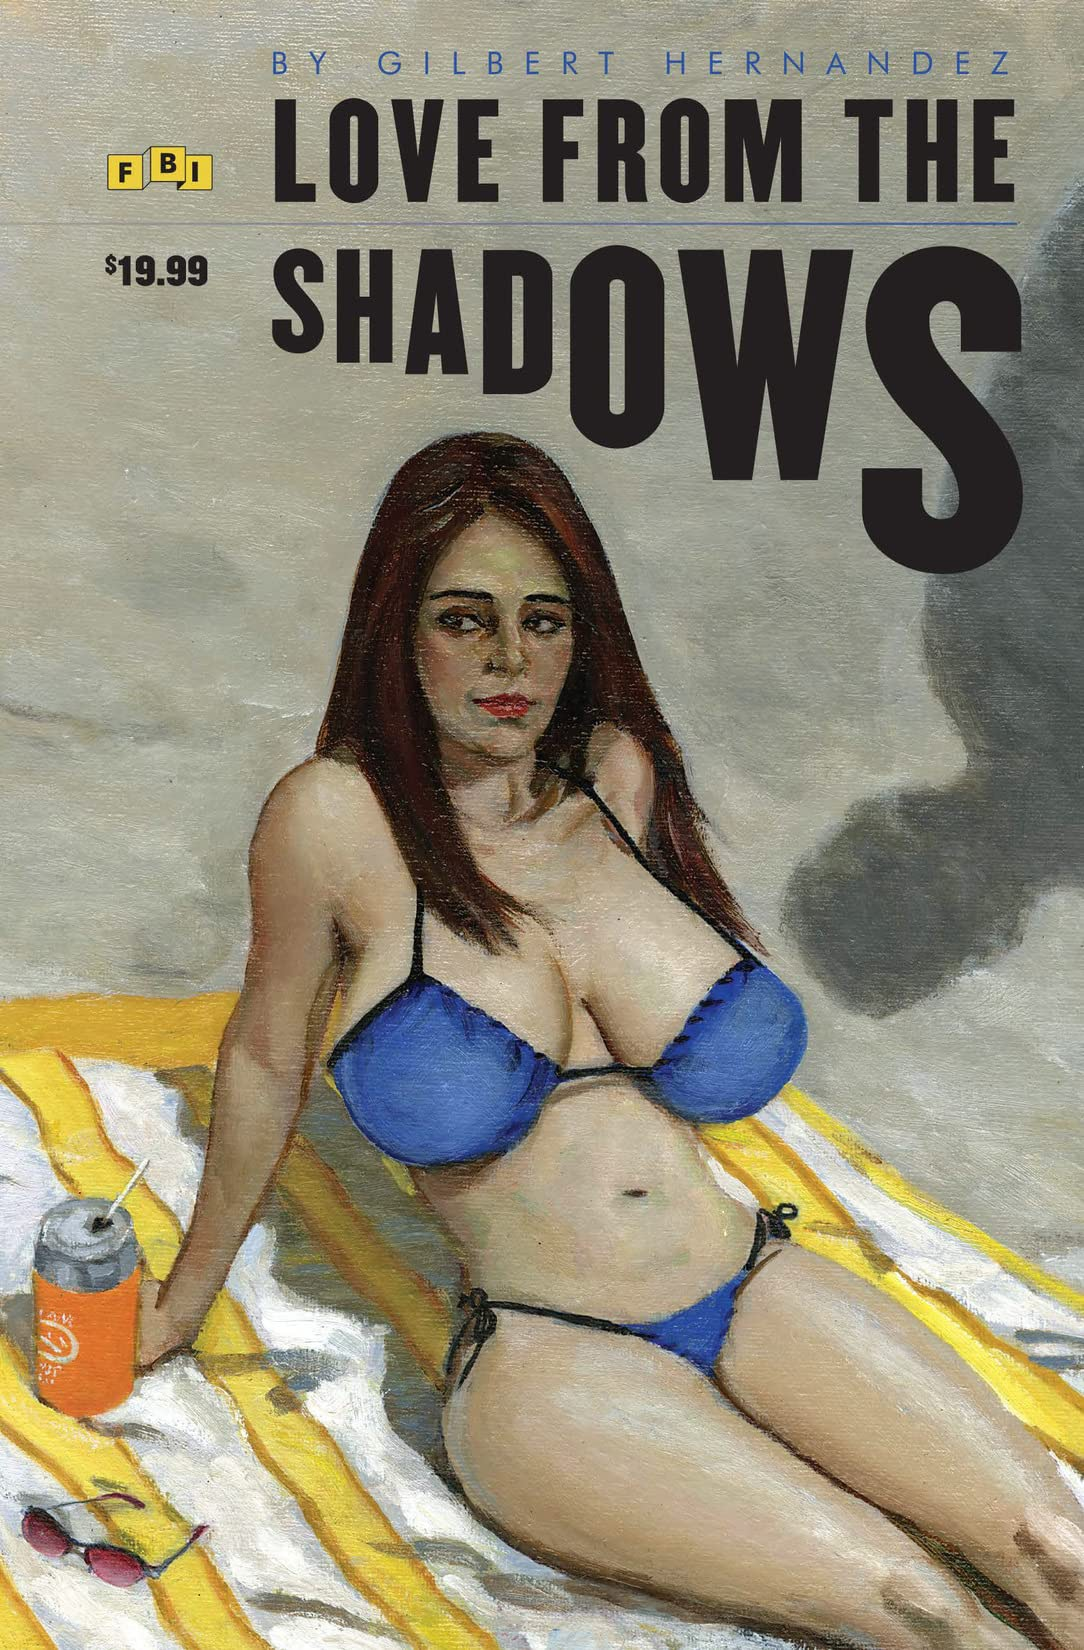 Love from the Shadows